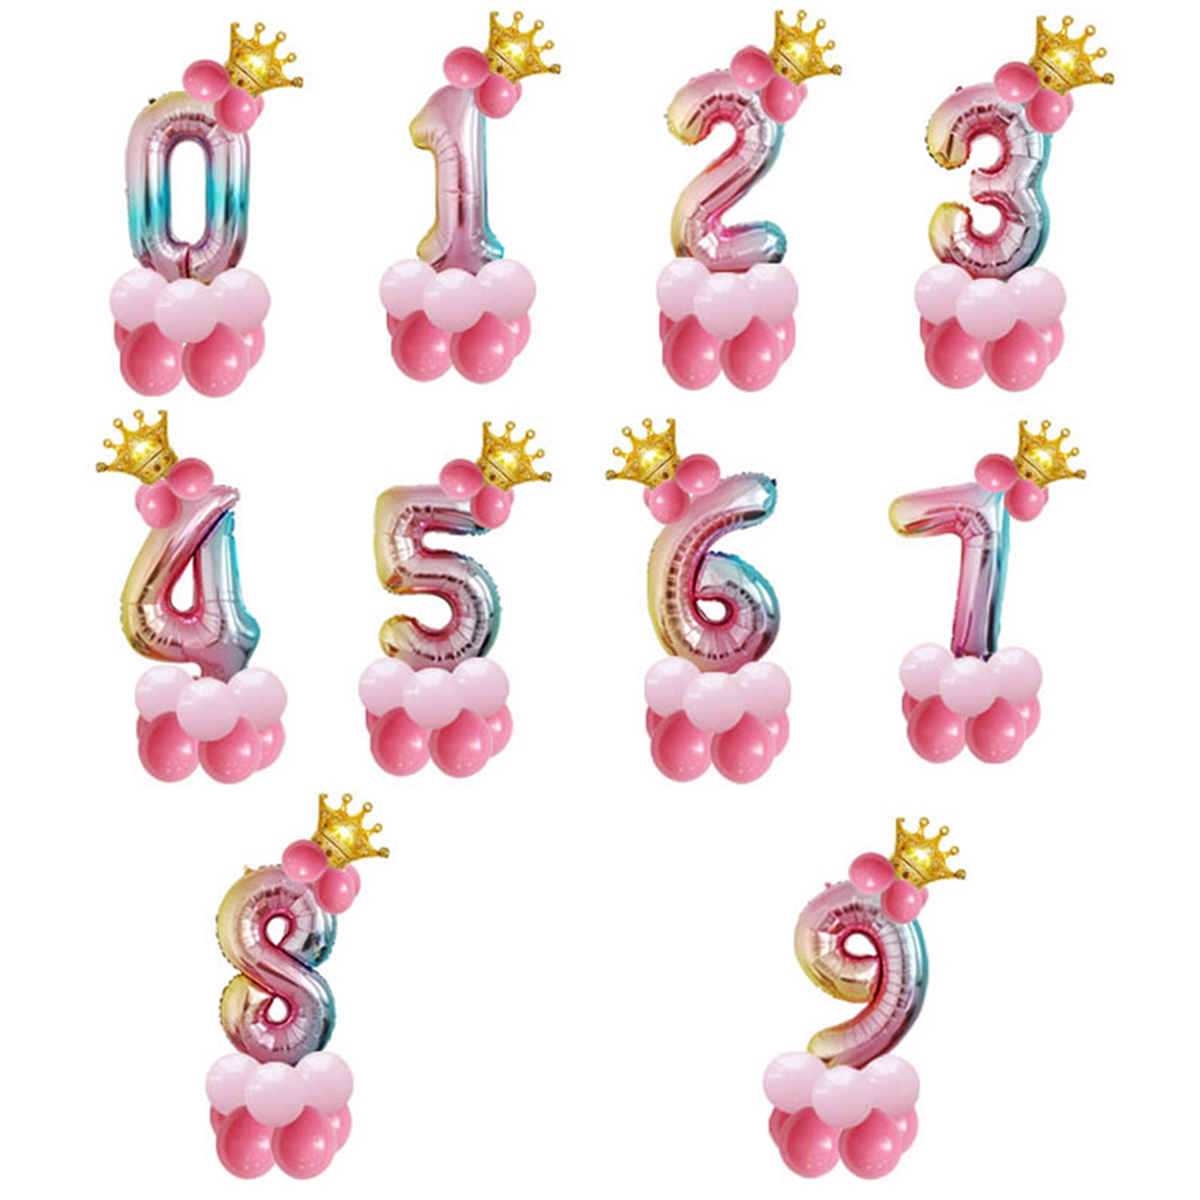 14Pcs Number Air Baloon Birthday Balloons Birthday Party Decorations Kids Foil Ballon Figures Baloon Balls Babyshower